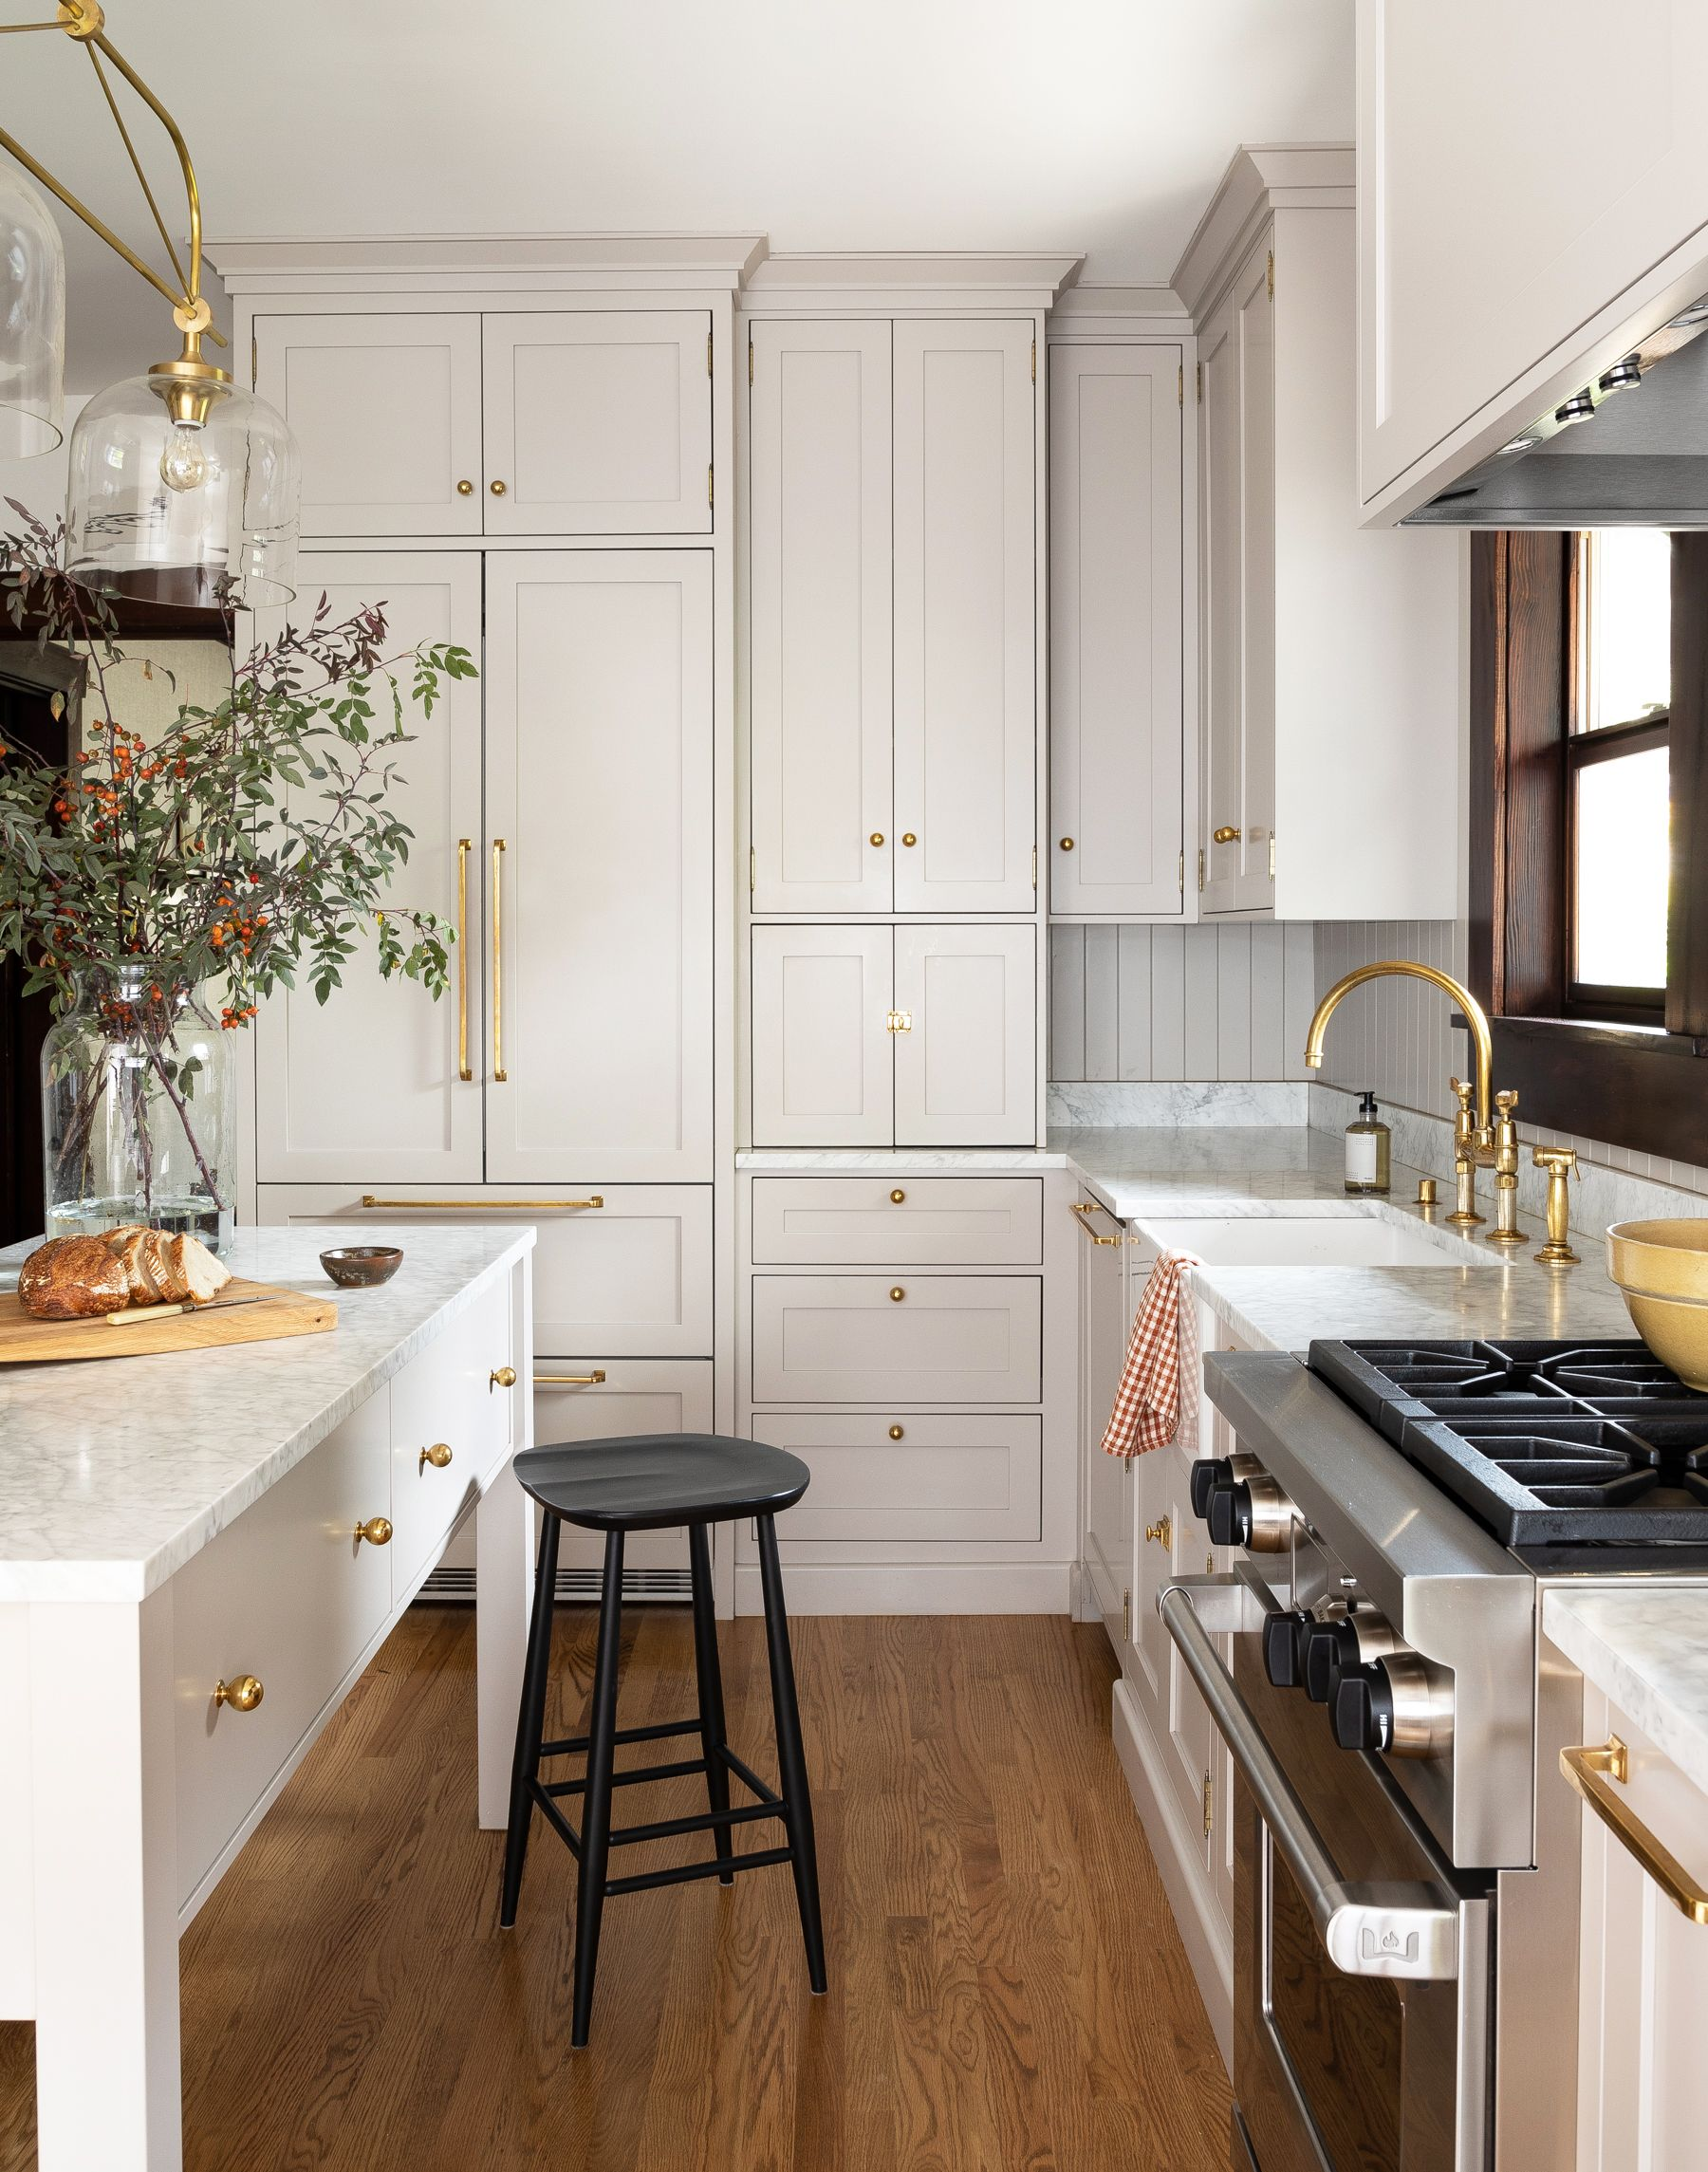 55 Creative Kitchen Cabinet Ideas We're Obsessed With